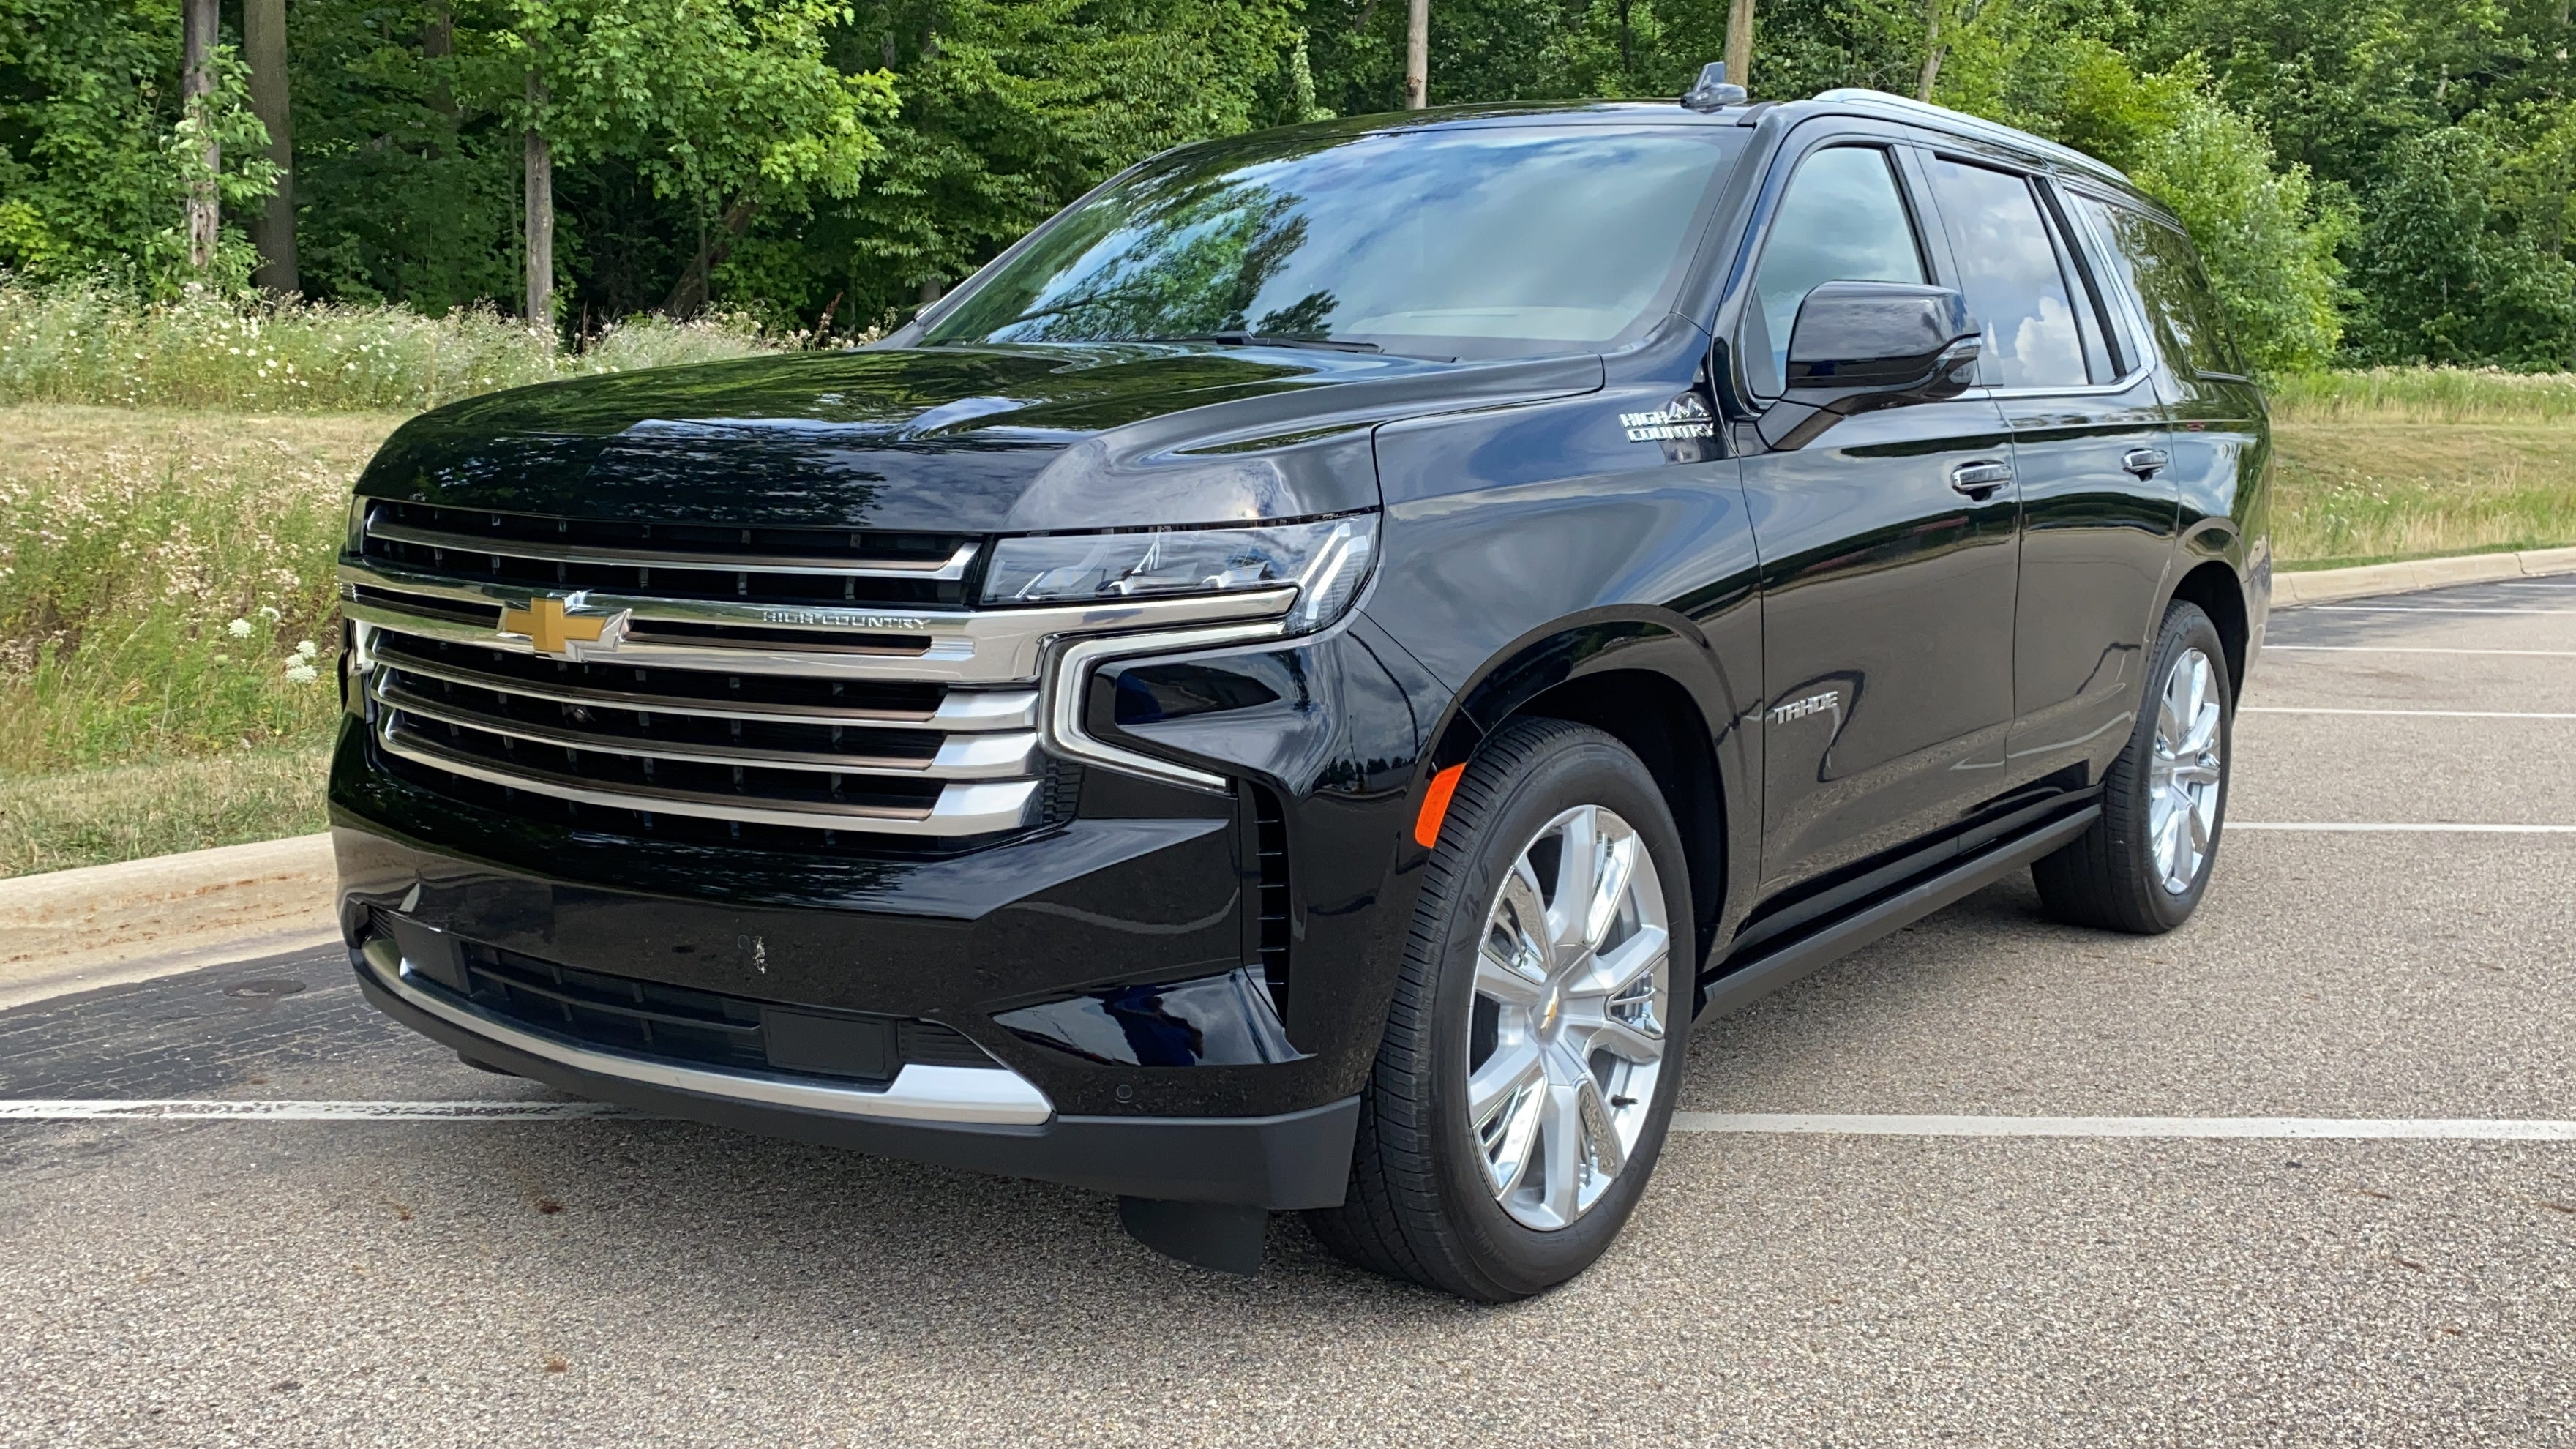 2021 Chevy Tahoe Review This Is The Big Suv To Beat